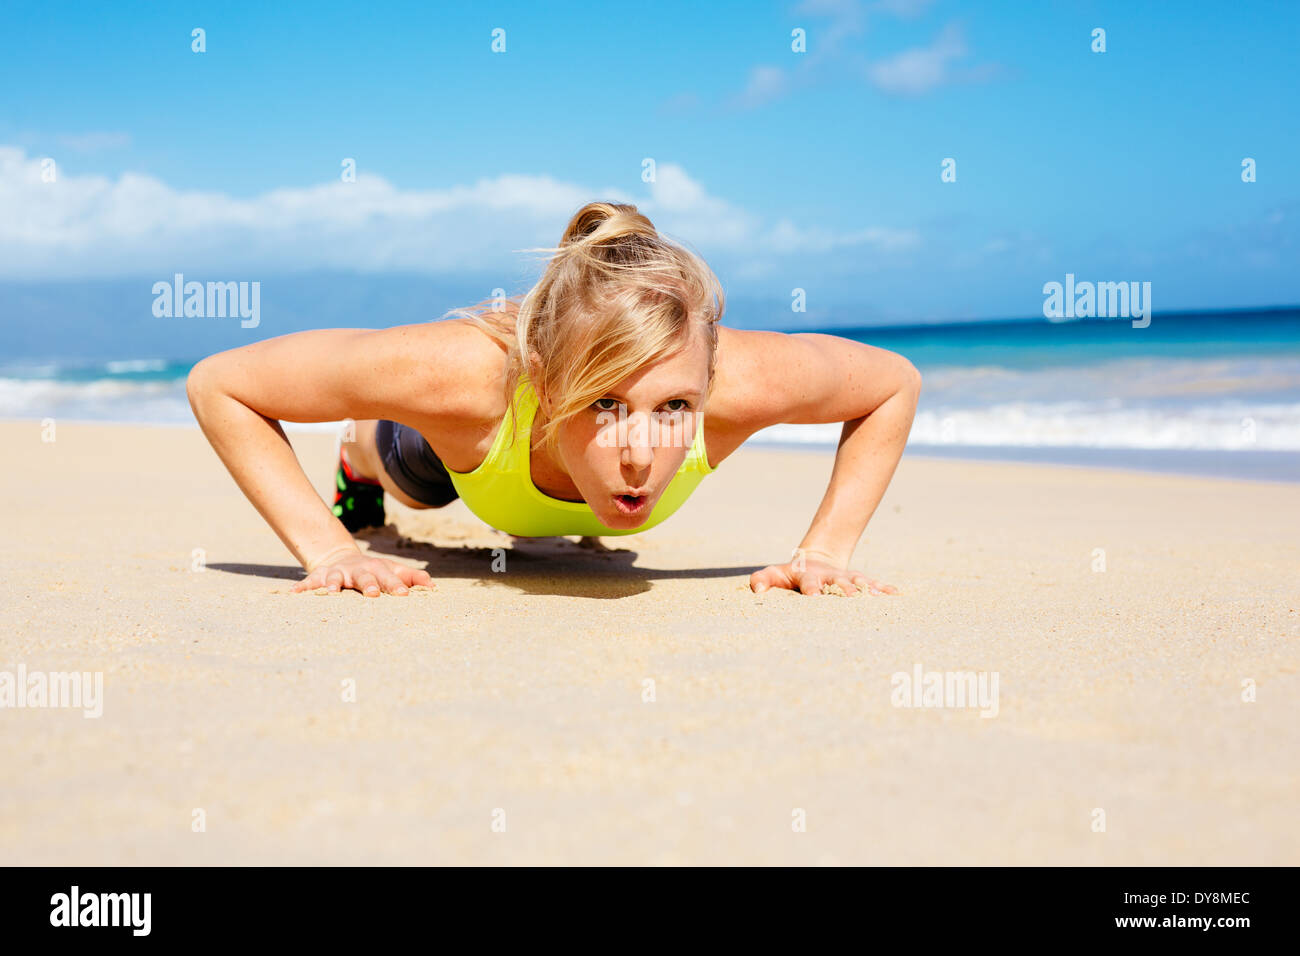 Young attractive woman doing push ups outside. Fitness woman working out at the beach. Crossfit exercise. Fitness Concept. - Stock Image